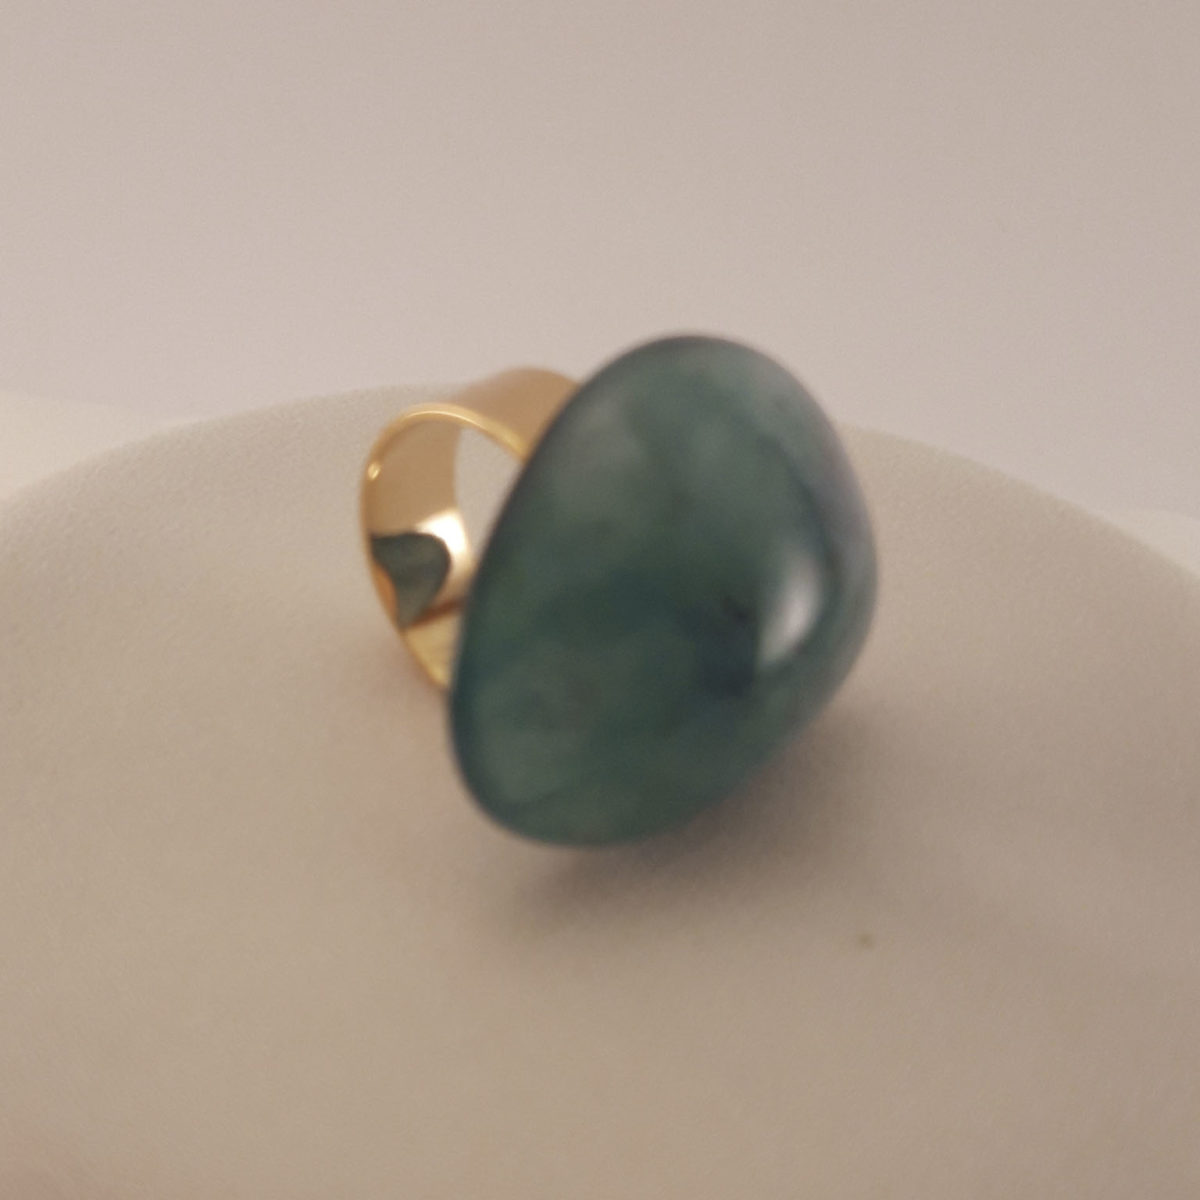 Ring With Green Oval Stone